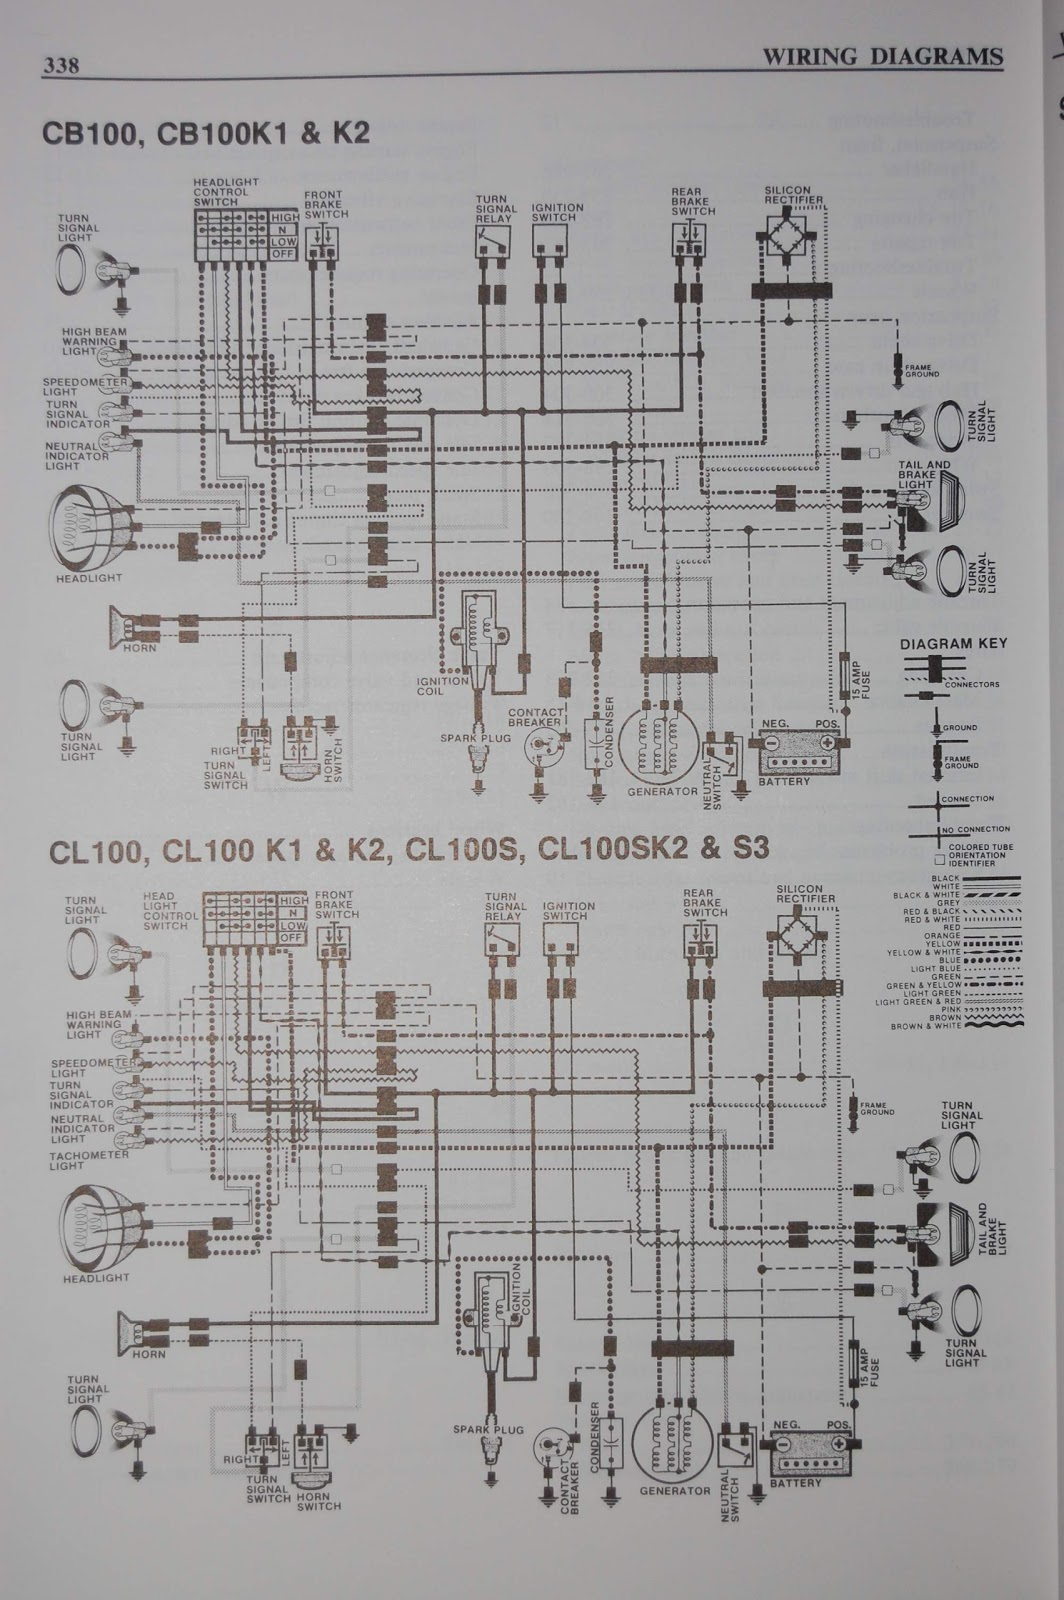 CB100+CL100+wiring+diagram r4l cb100 wiring diagram 1974 Rupp Snowmobile at bayanpartner.co